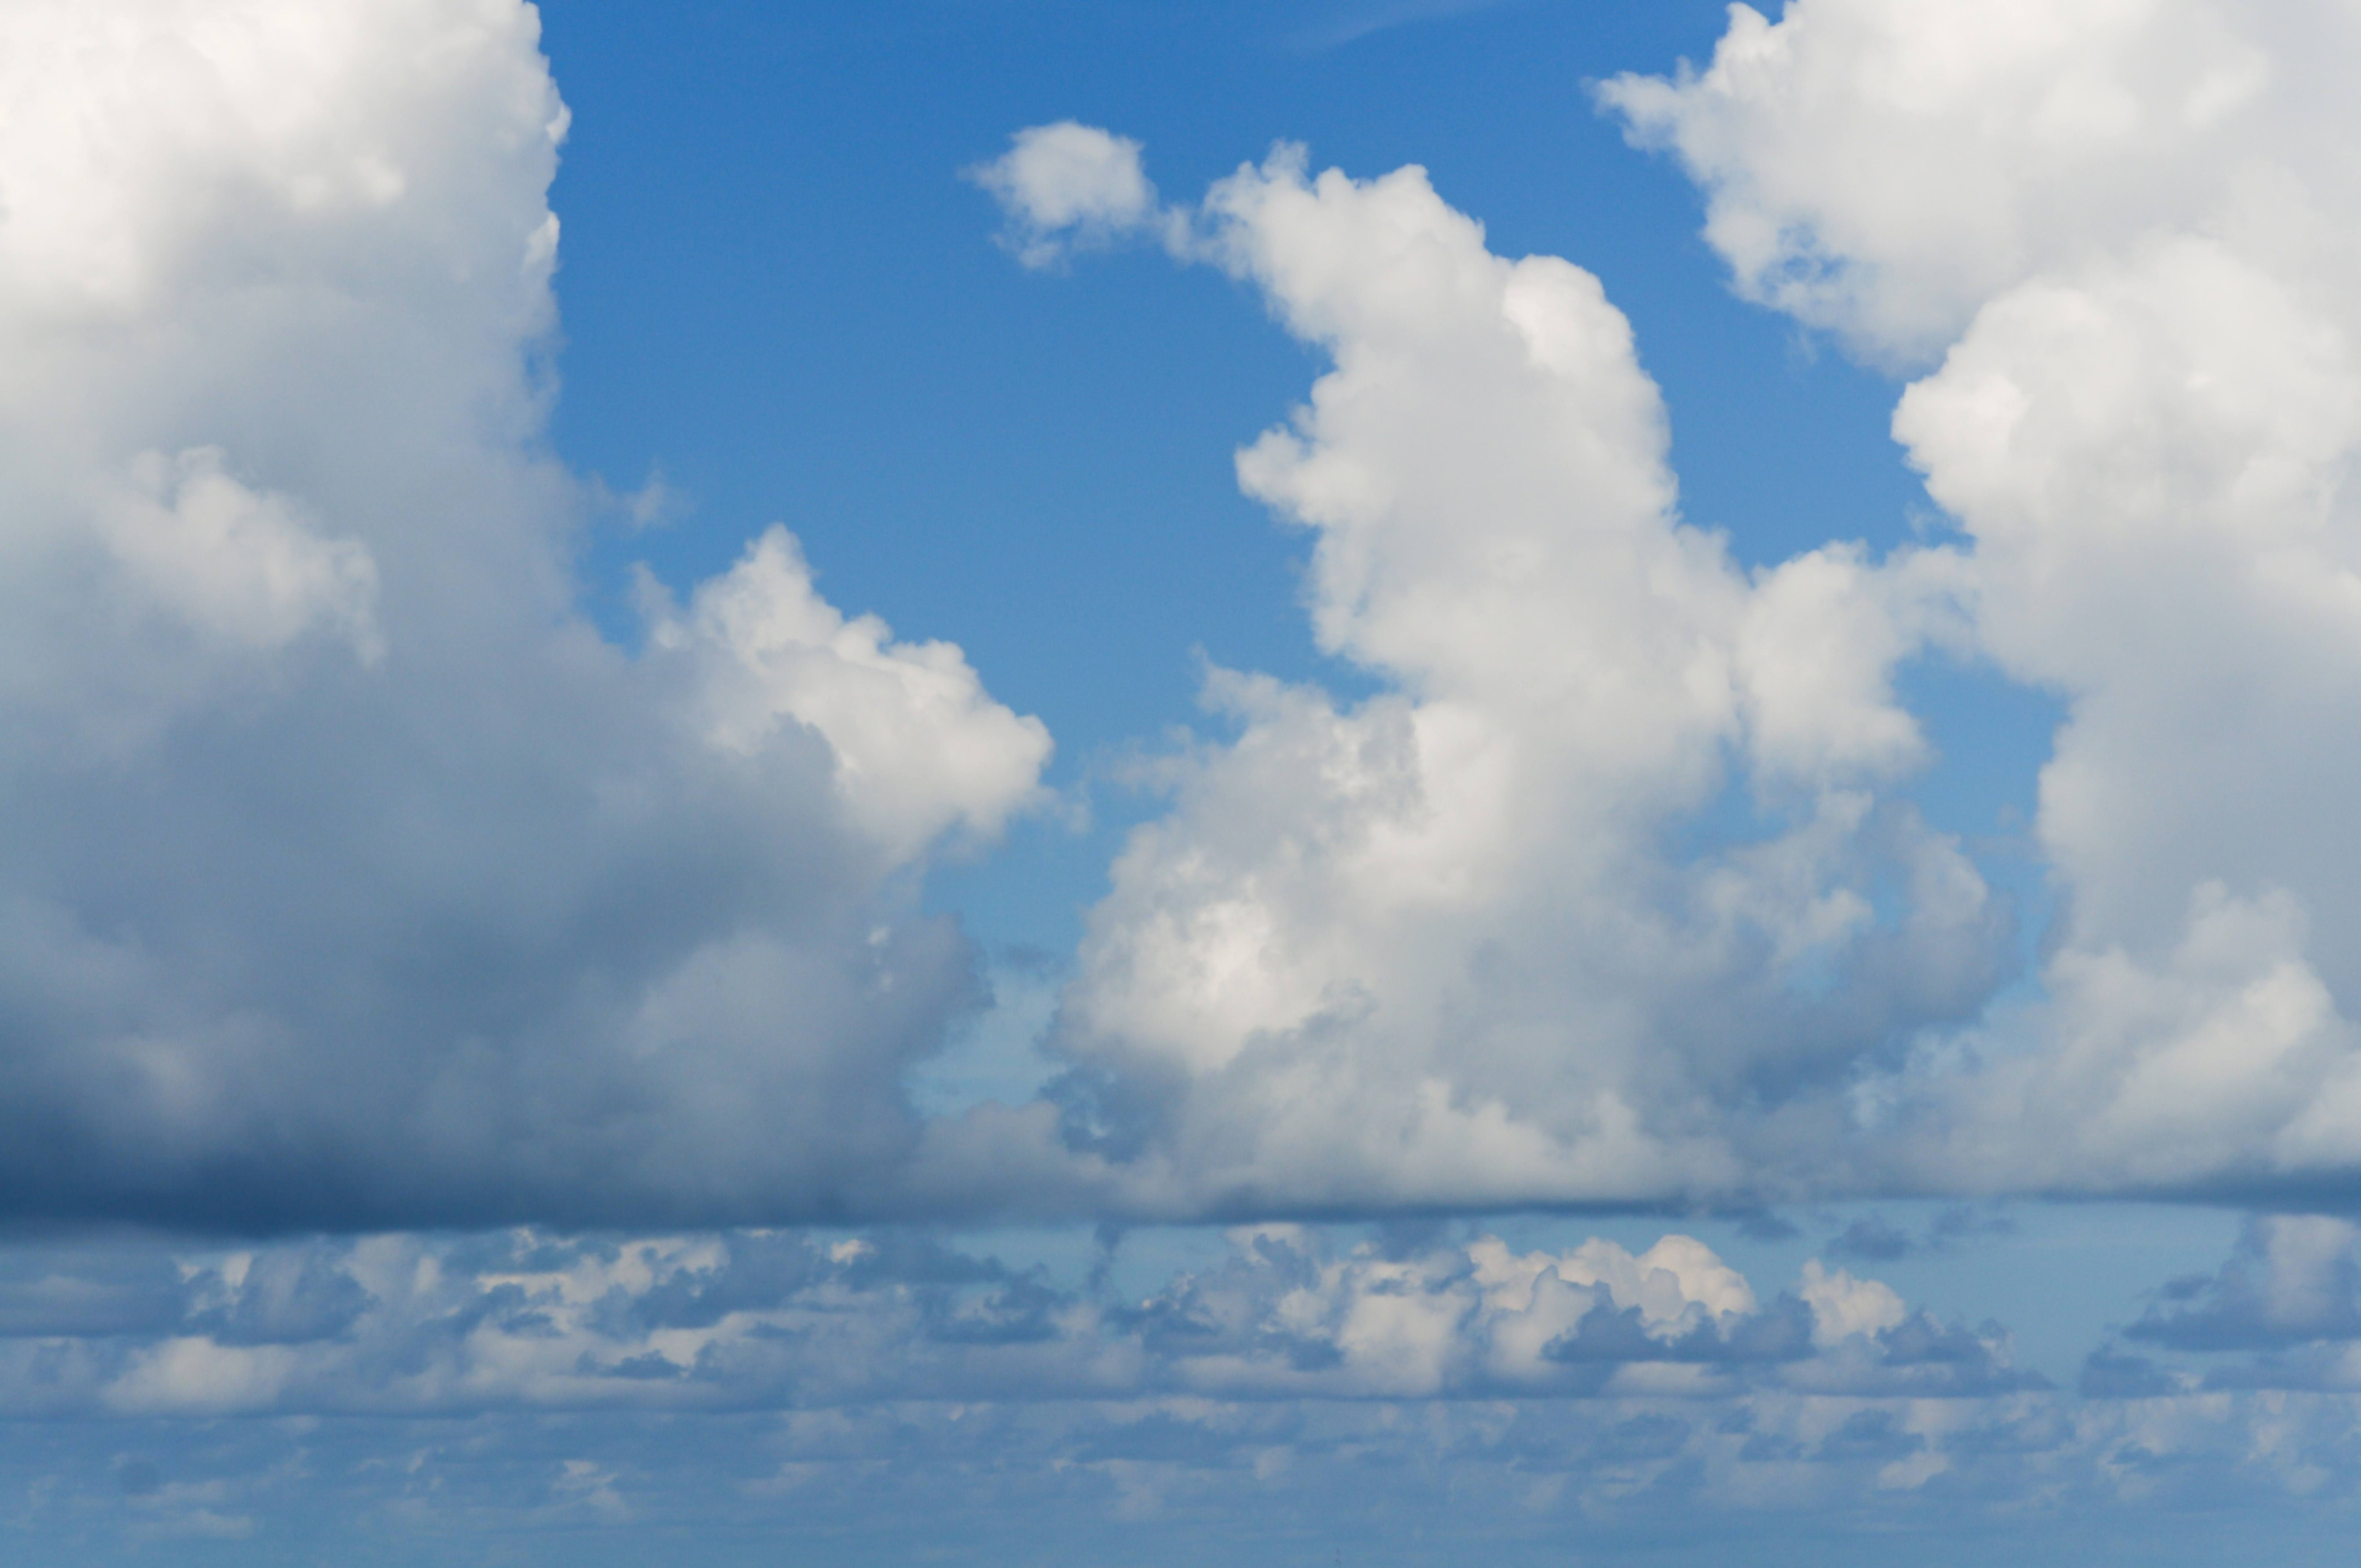 Low White Clouds on a Blue Sky Backdrop